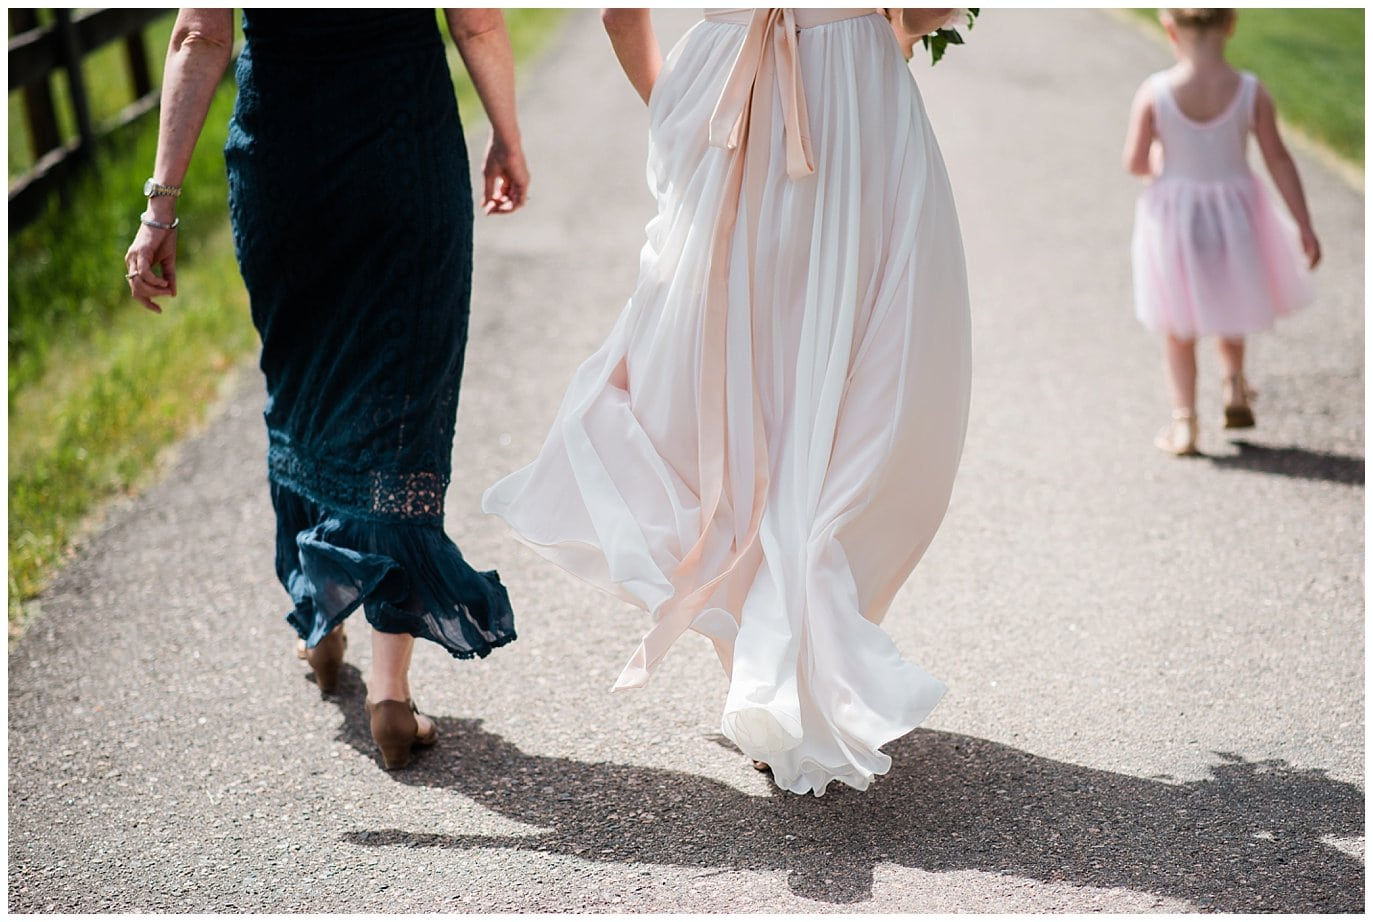 rose pink Truvelle Carrall wedding dress at Deer Creek Valley Ranch wedding by Deer Creek Valley Ranch Wedding Photographer Jennie Crate Photographer